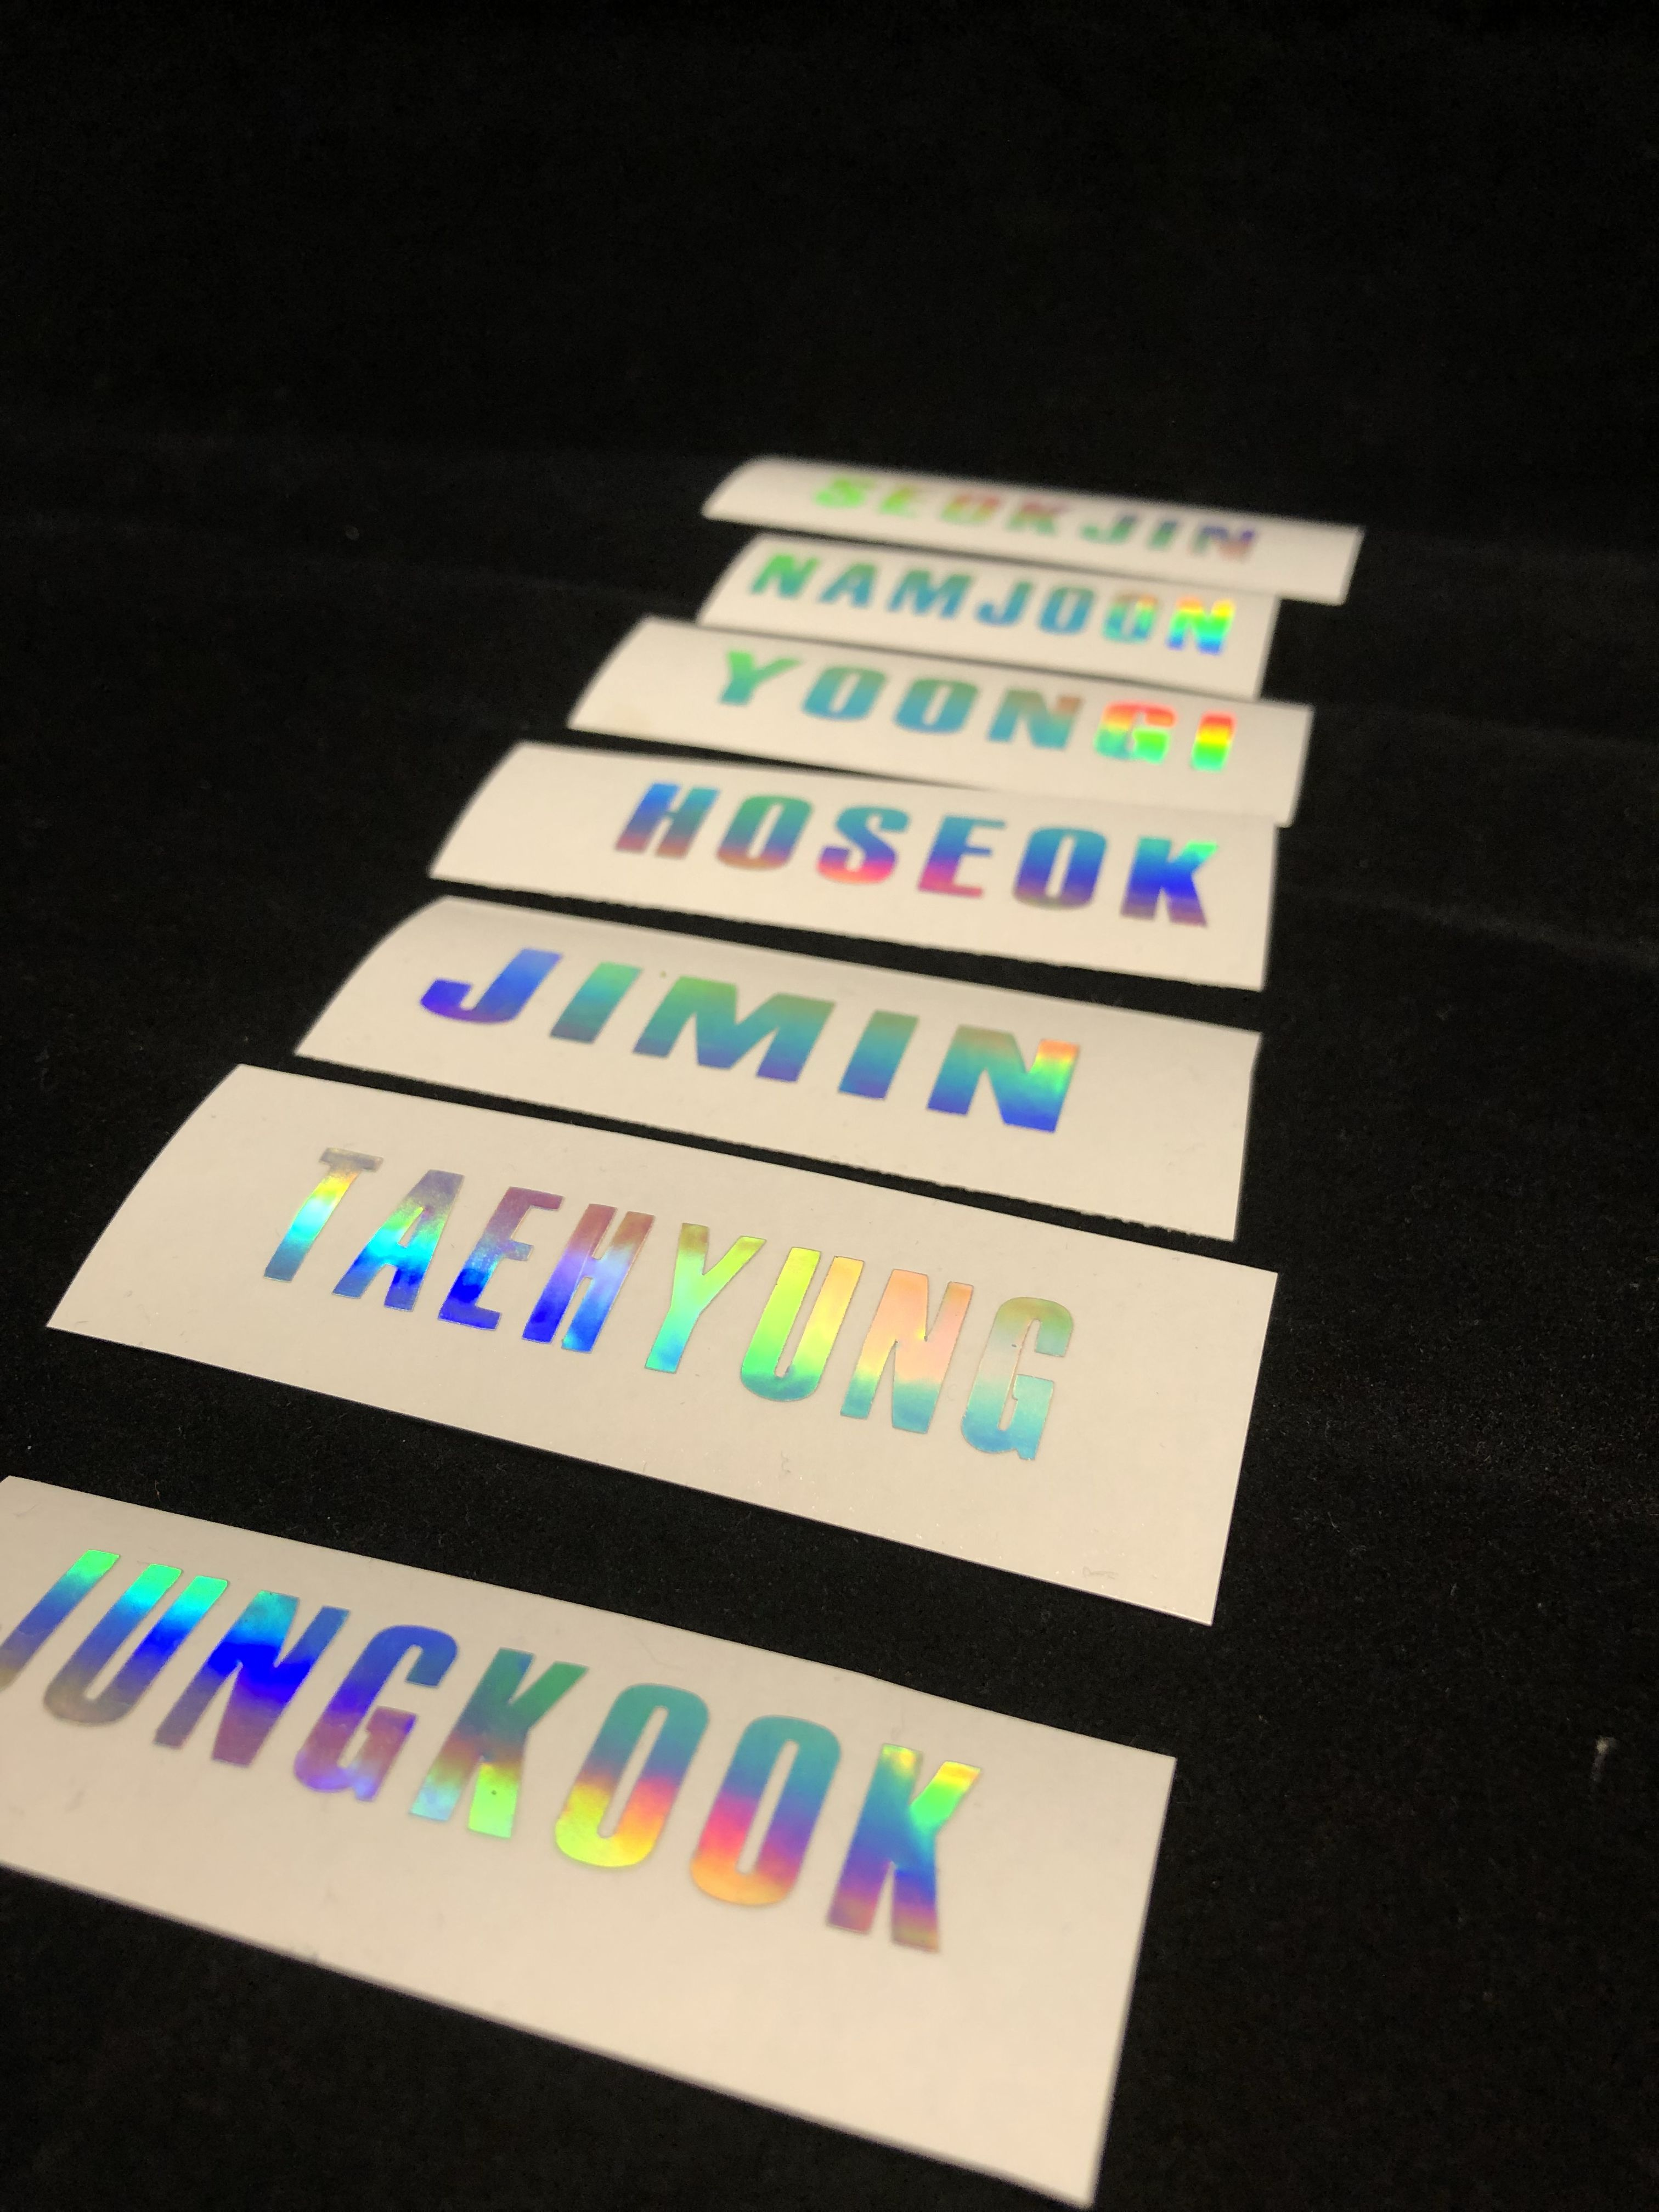 Version 3 custom army bomb lightstick decals get yours before the tour date you can custom design what you want